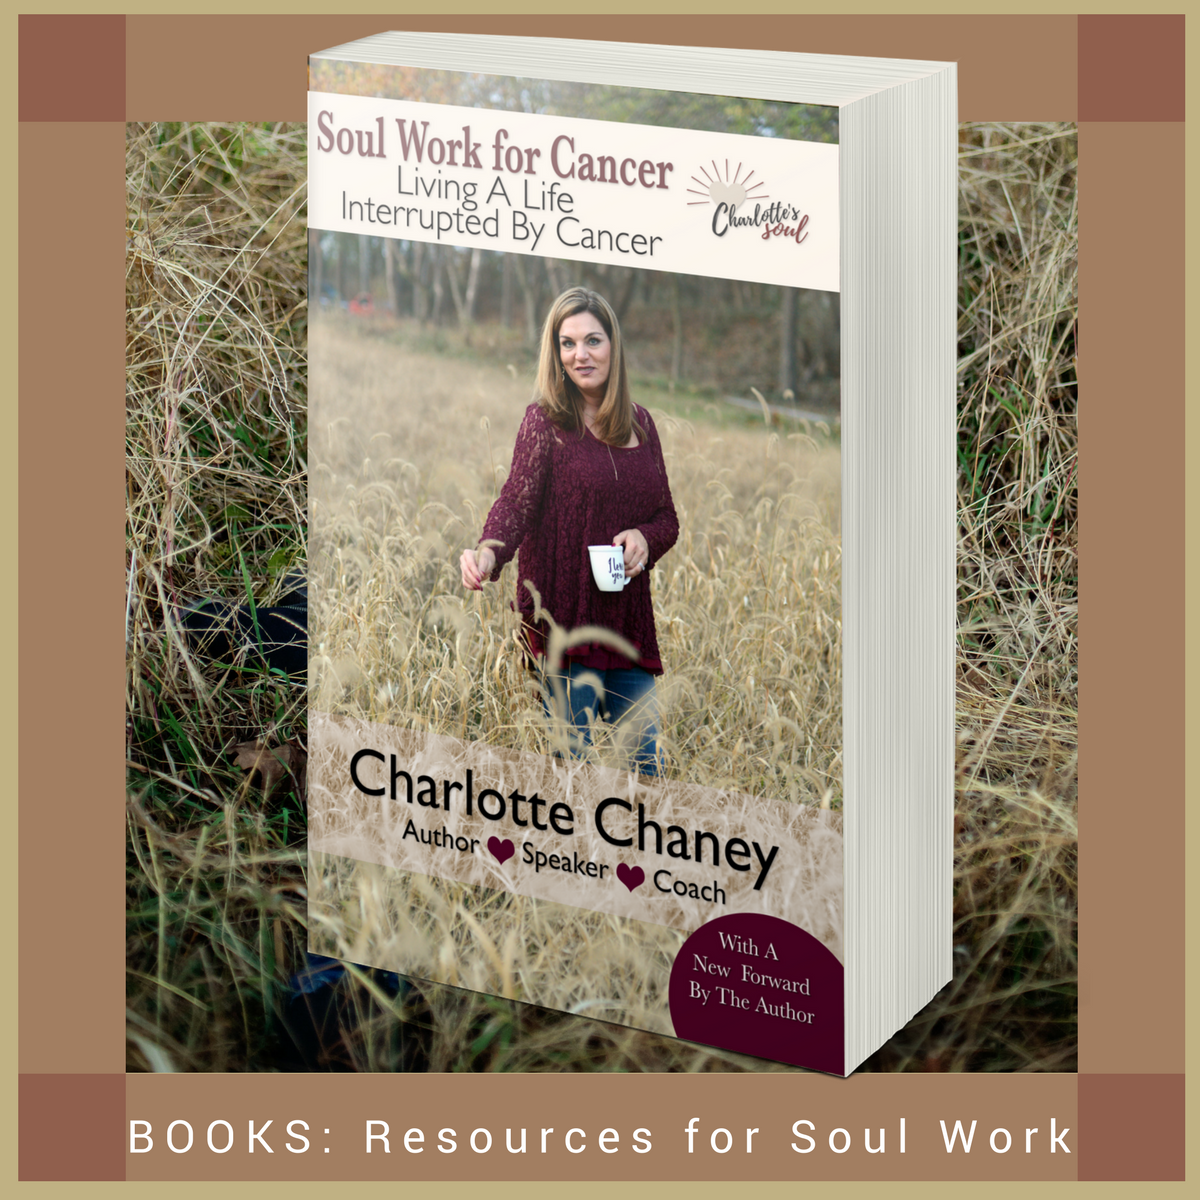 Soul Work for Cancer: Living A Life Interrupted By Cancer